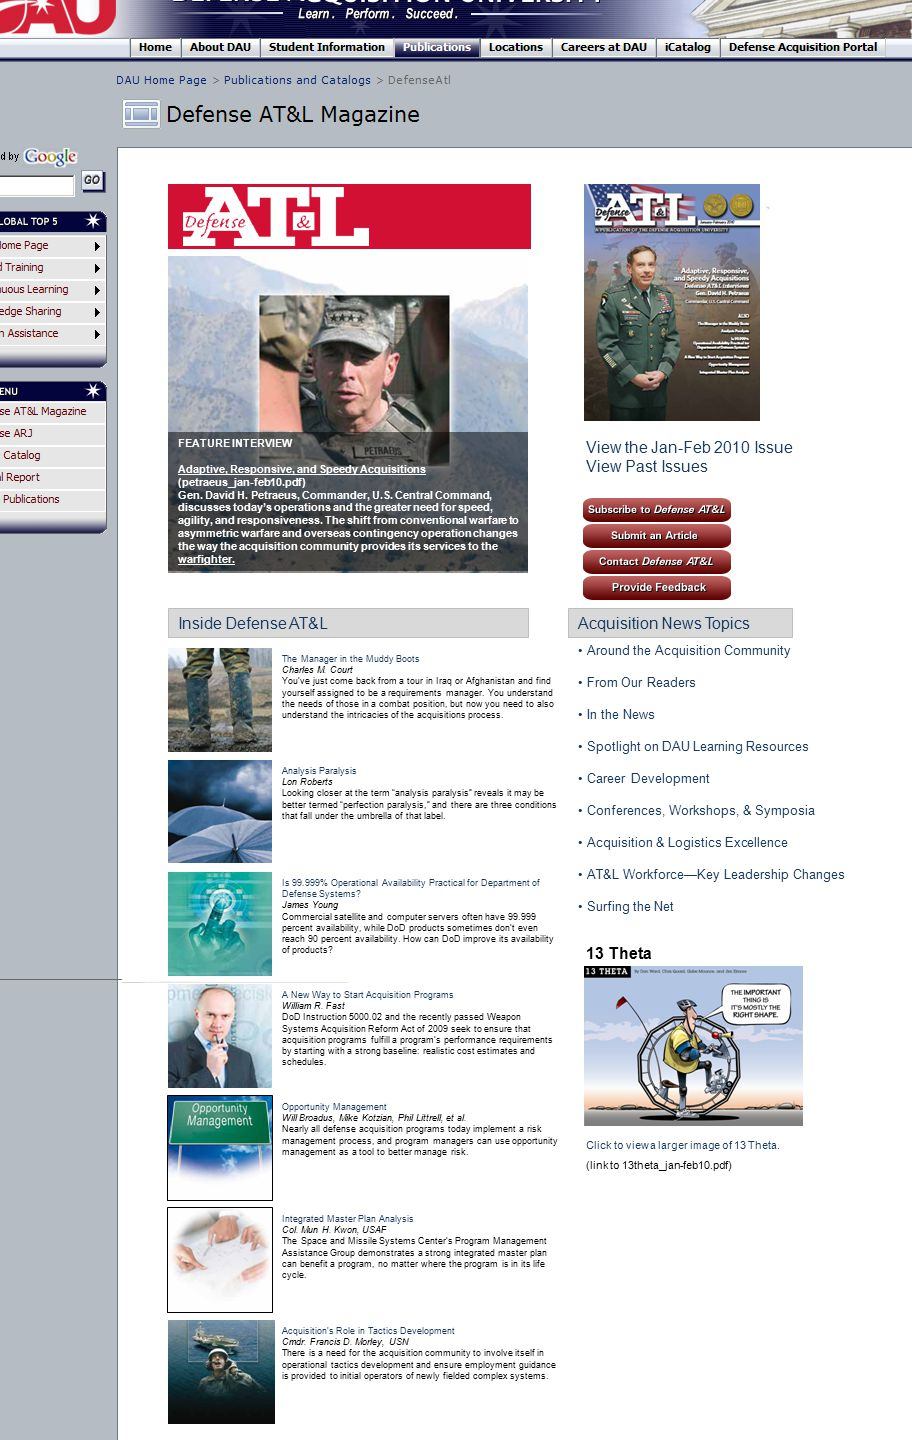 FEATURE INTERVIEW Adaptive, Responsive, and Speedy Acquisitions (petraeus_jan-feb10.pdf) Gen. David H. Petraeus, Commander, U.S. Central Command, disc